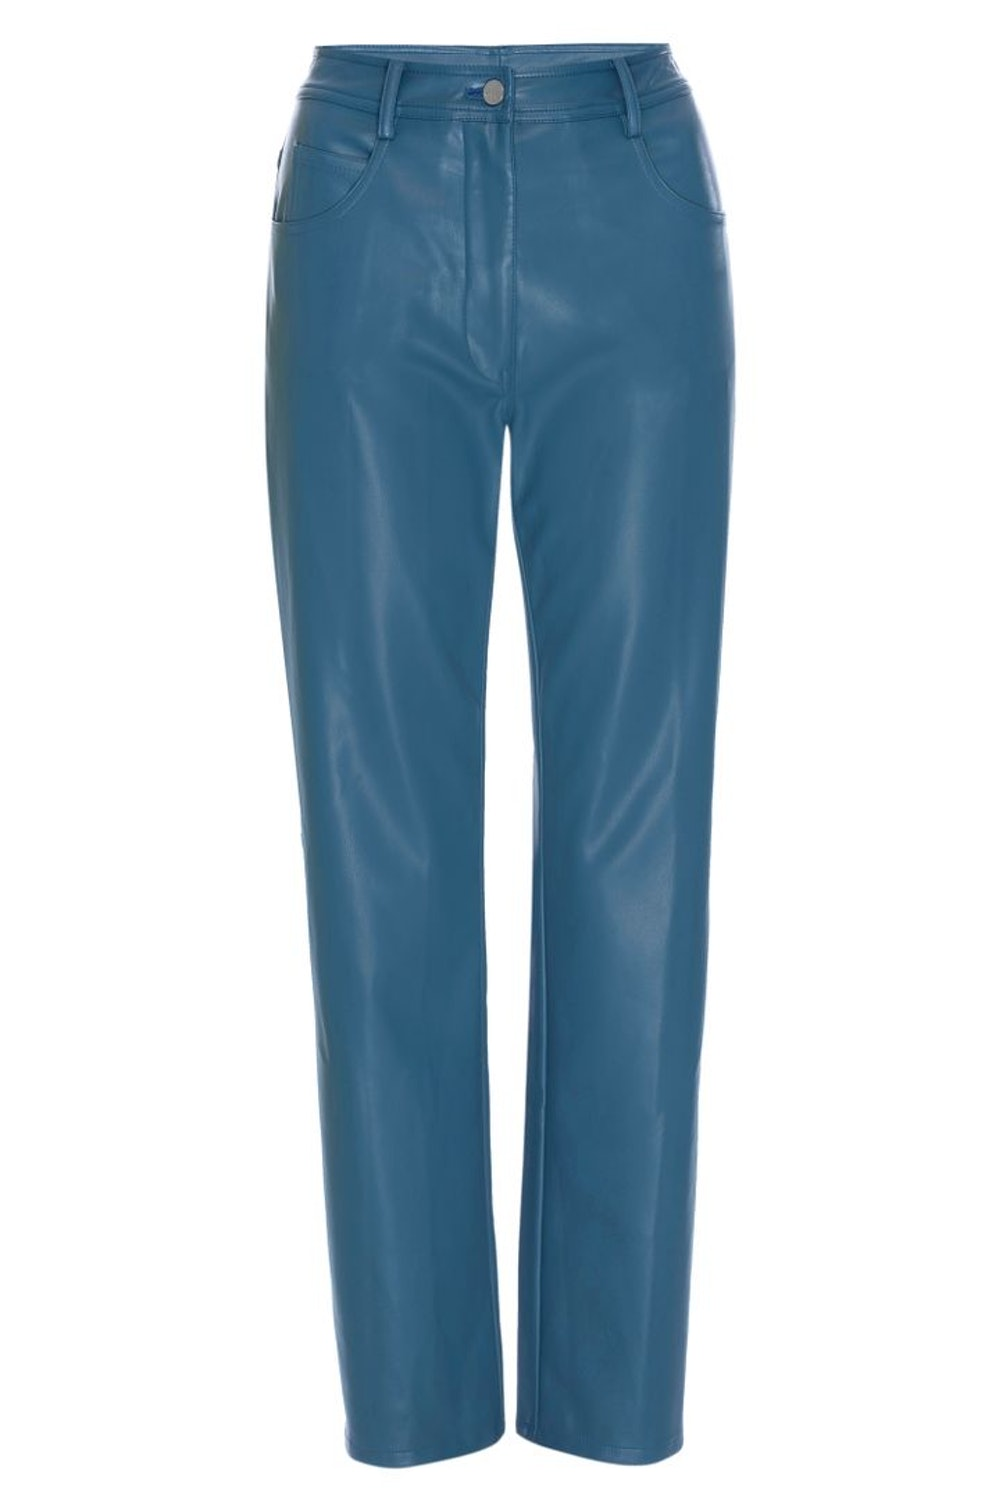 Junior Pant in Teal Leather